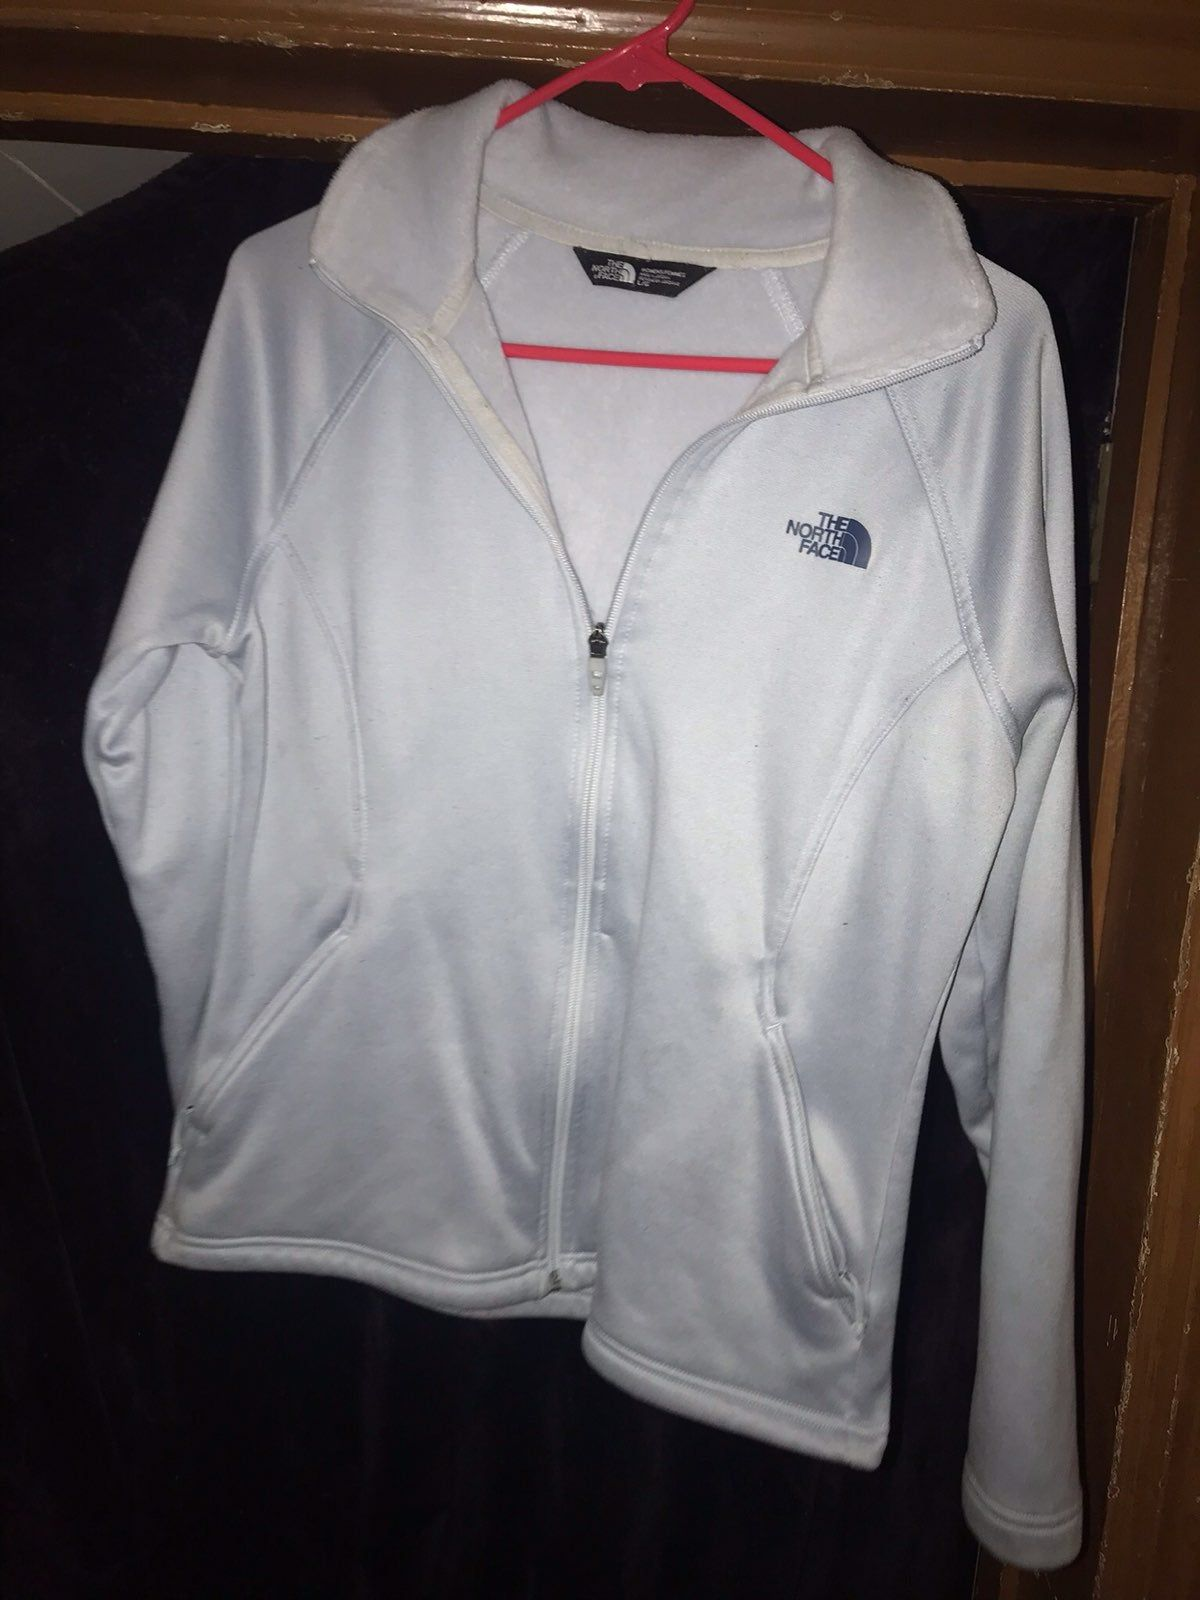 Baby Blue North Face Jacket In Good Condition Offers Welcome Originally 110 North Face Jacket North Face Women Jackets For Women [ 1600 x 1200 Pixel ]